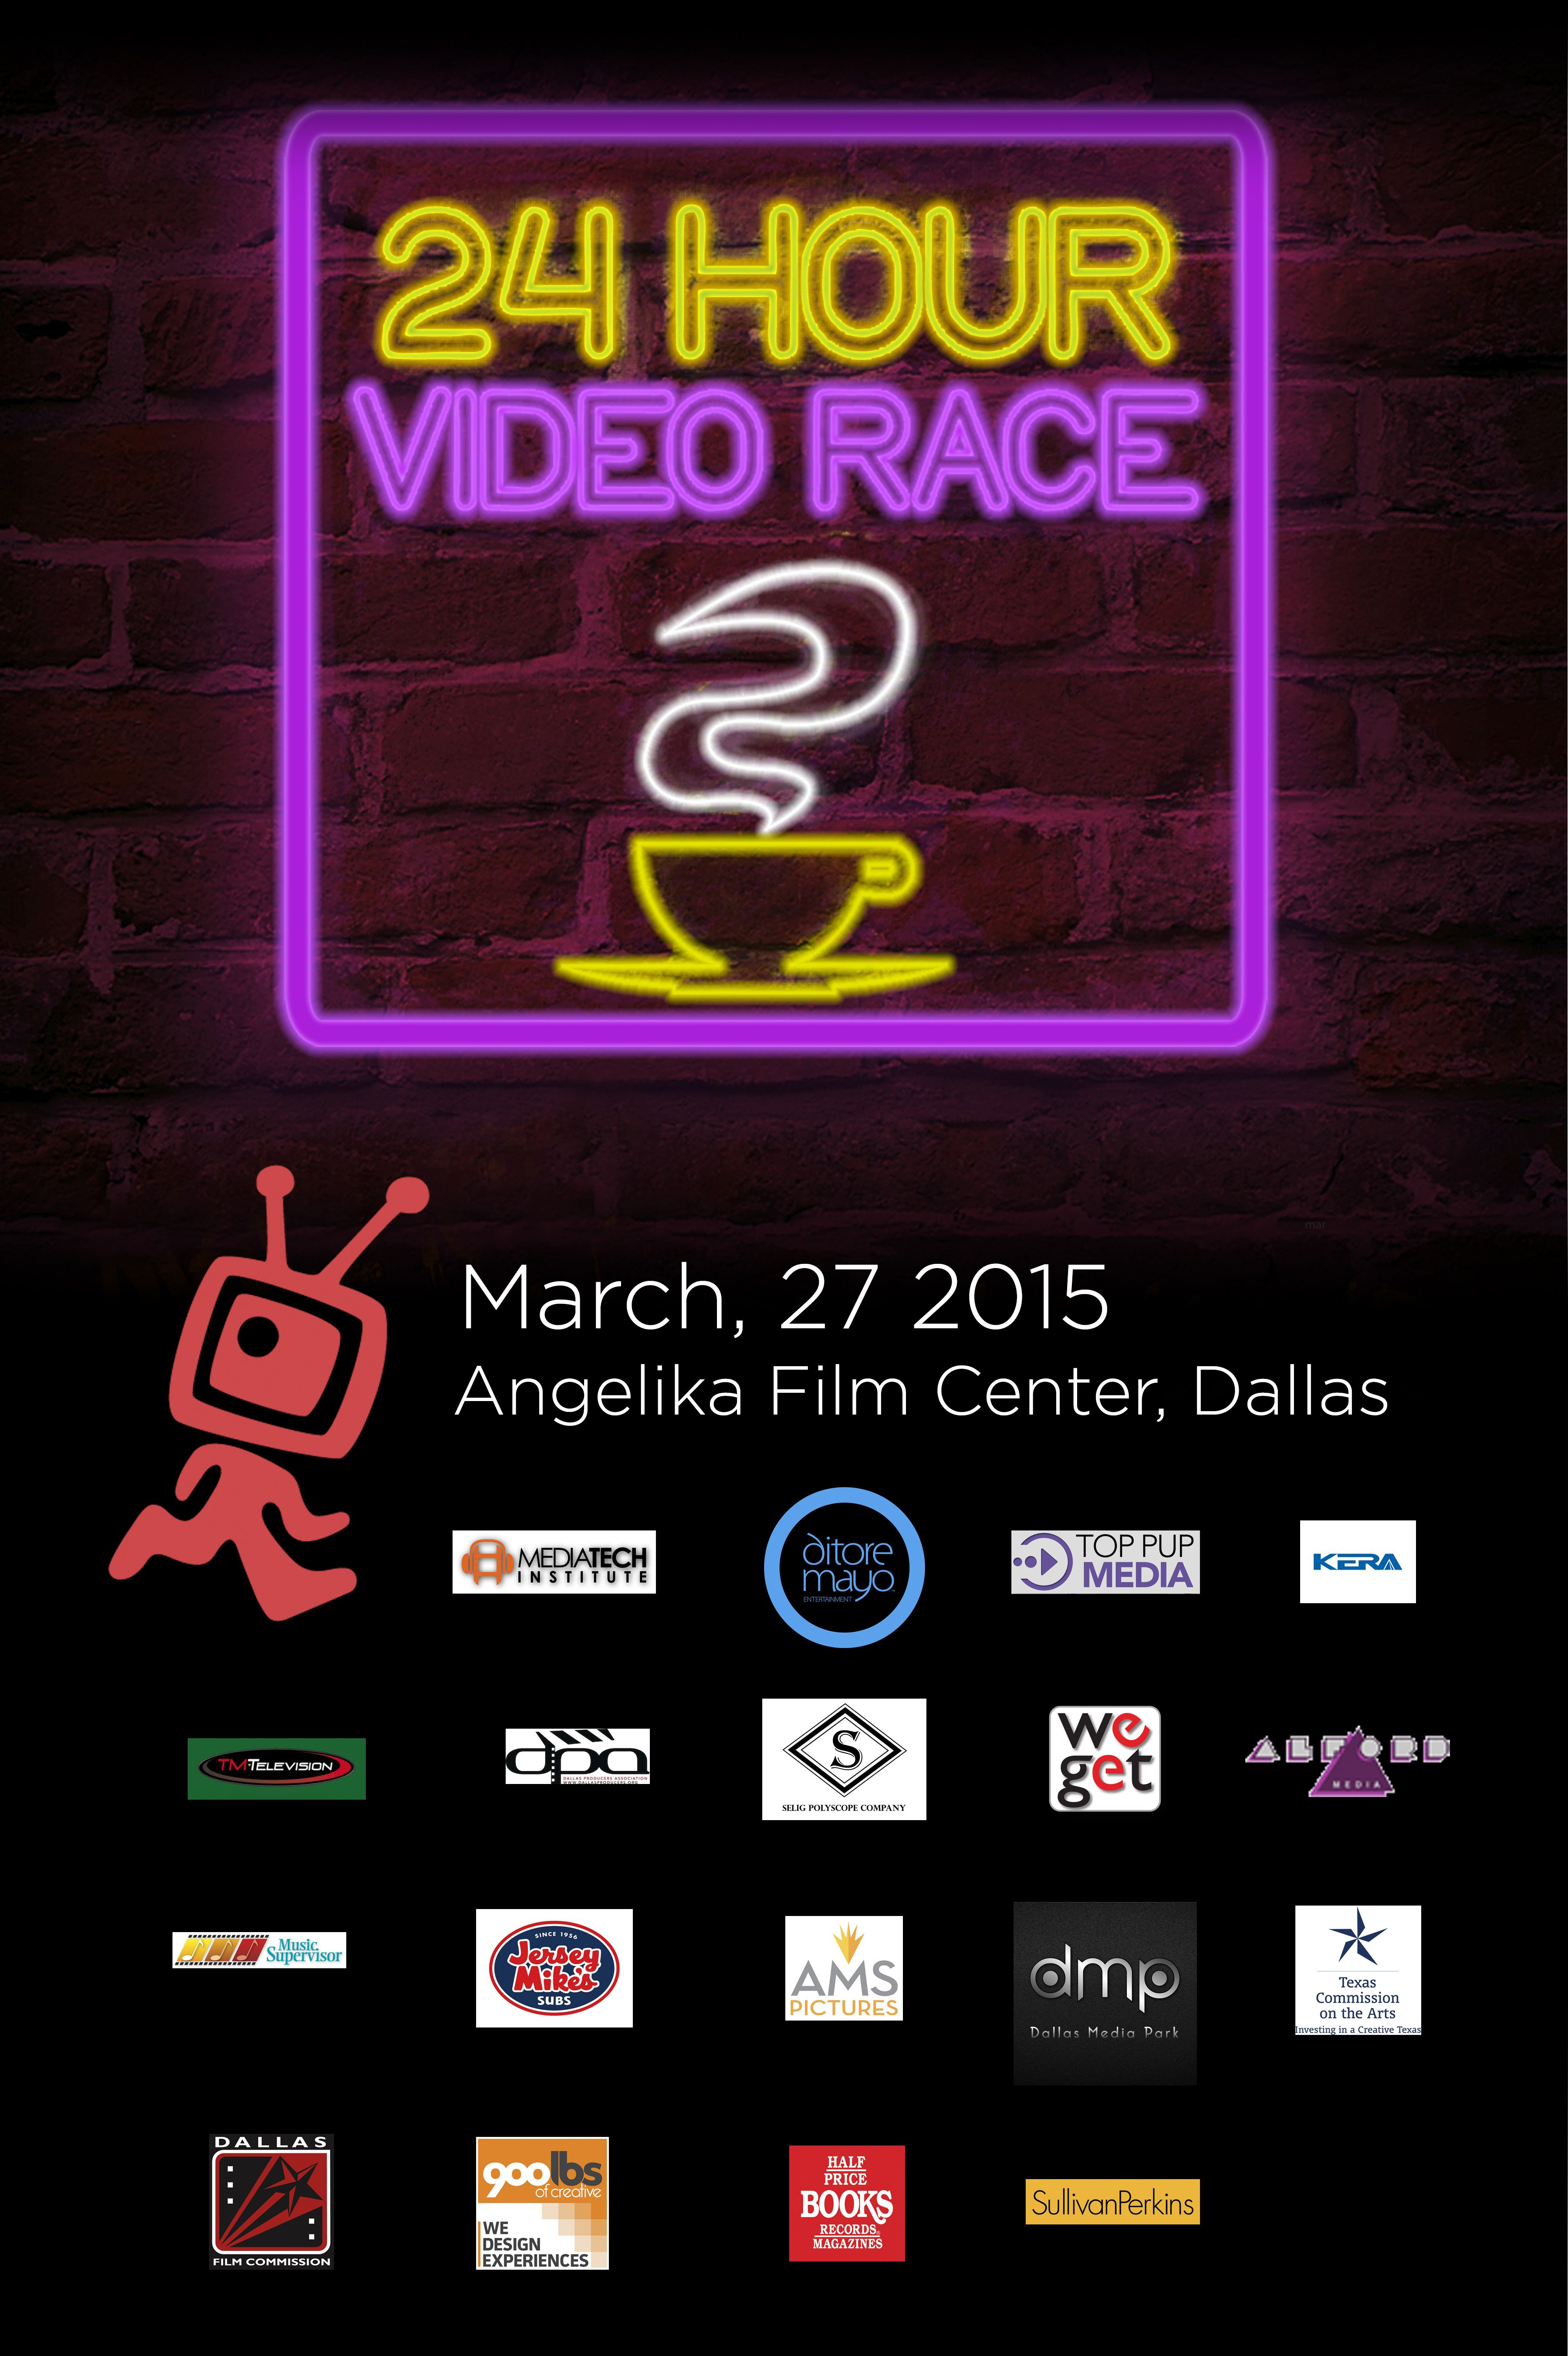 The 24 Hour Video Race starts this week at the Angelika